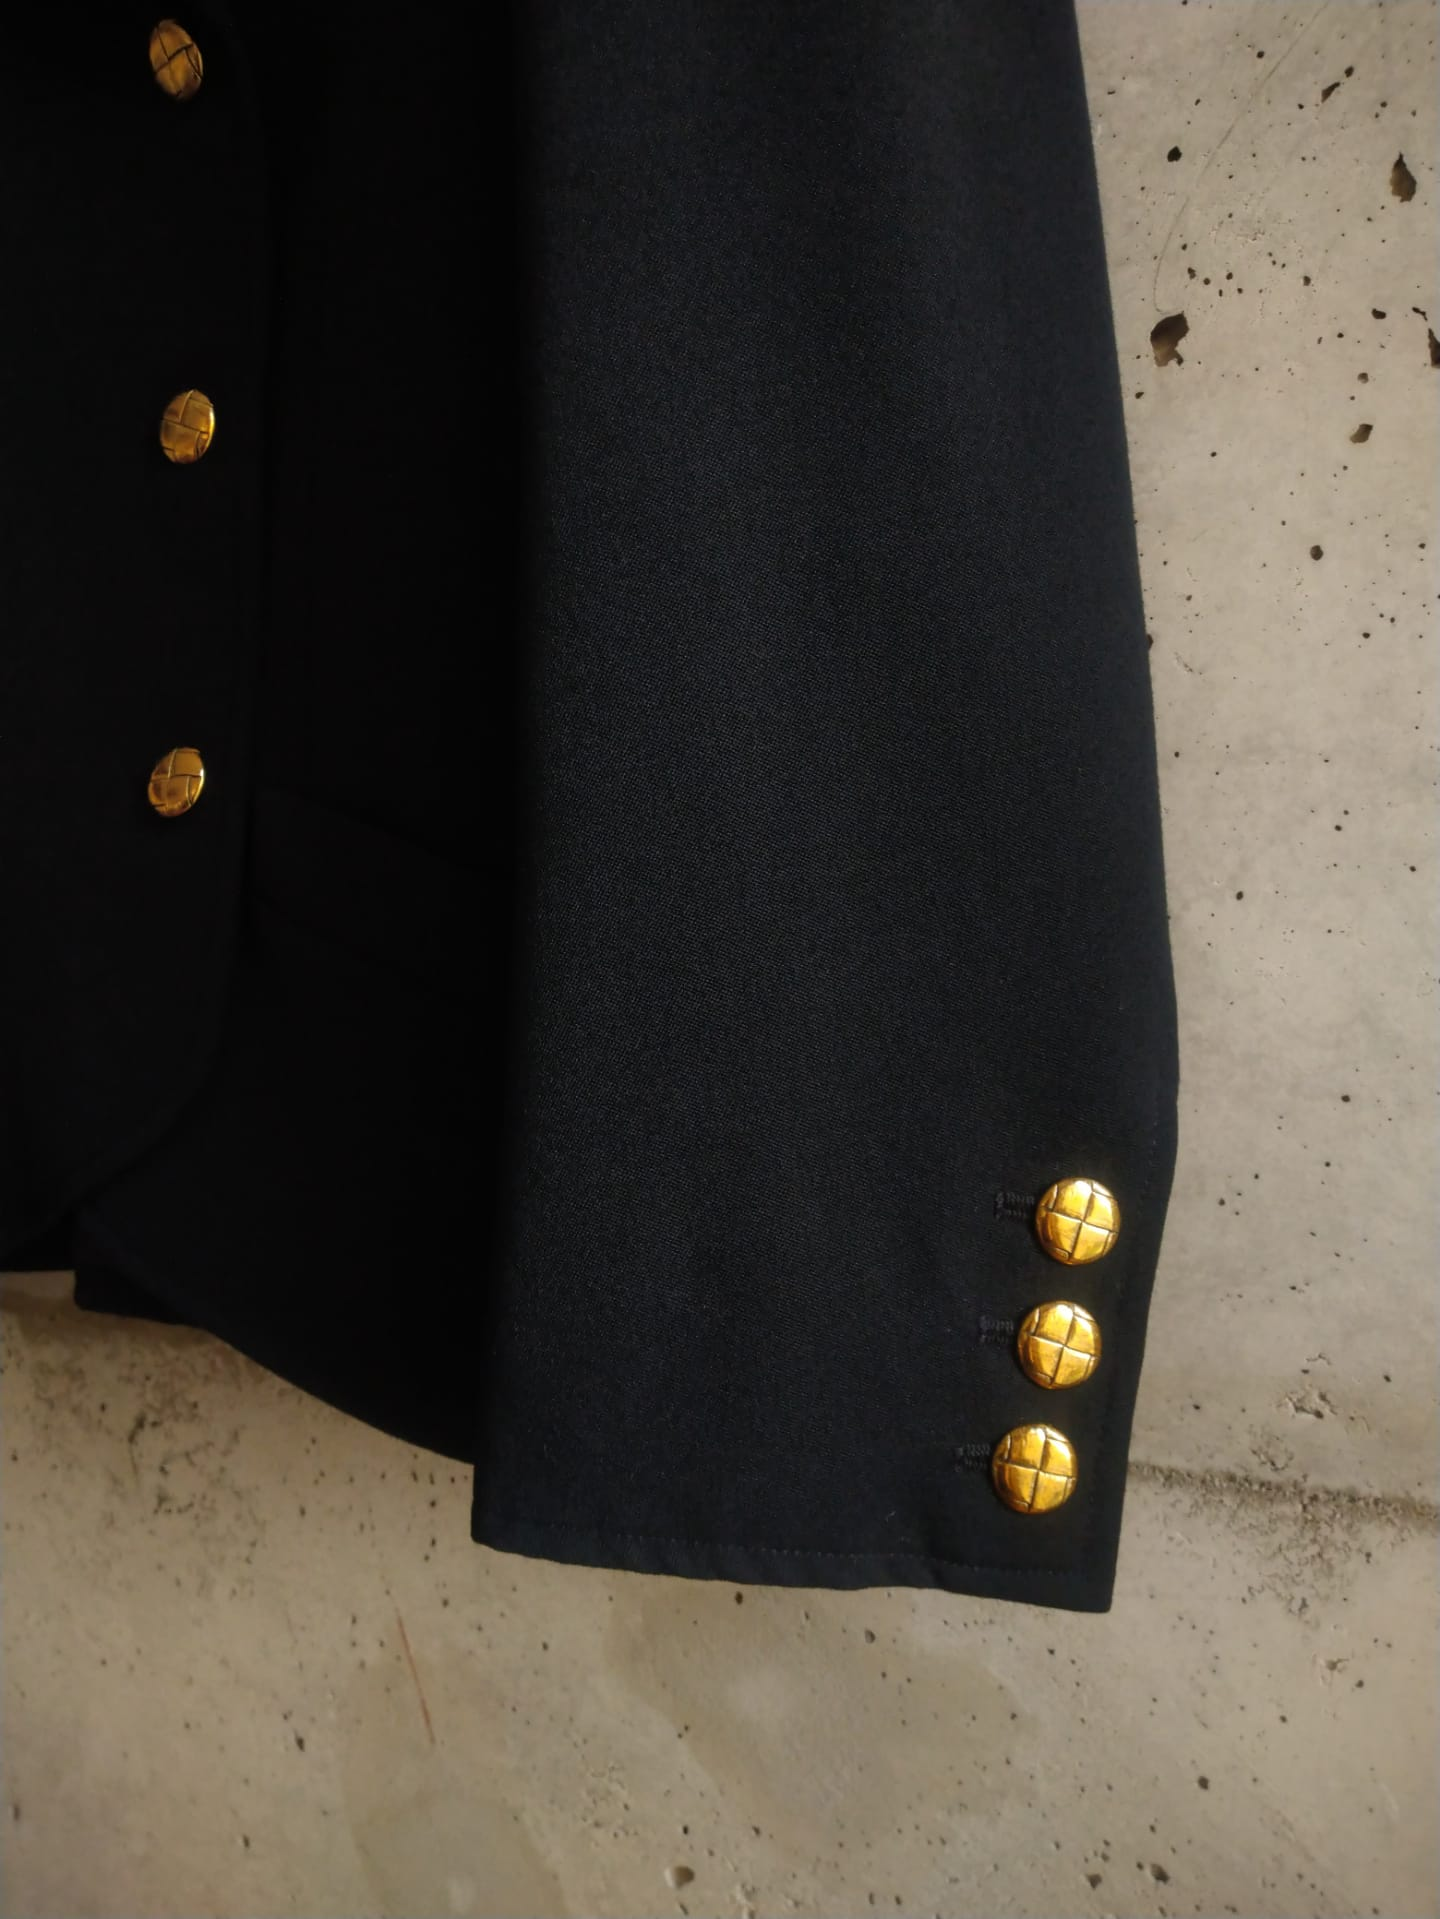 Yves Saint Laurent double breasted jacket with golden buttons